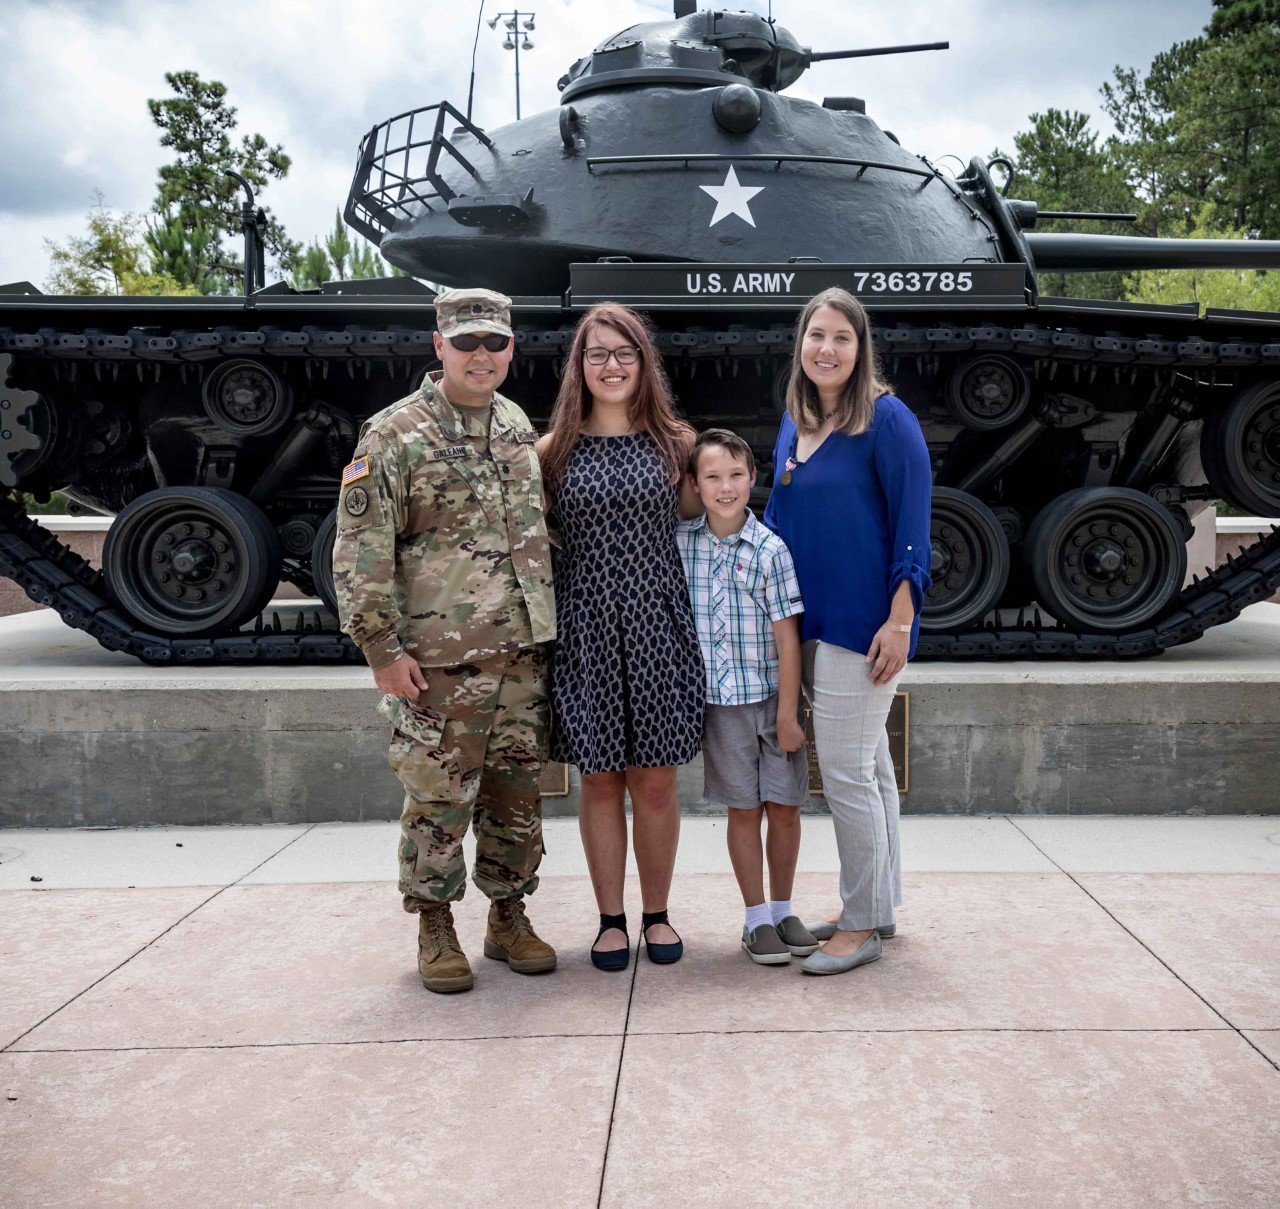 On the left, U.S. Army Lt. Col. Rick Galeano, from the U.S. Army Central's Commander's Initiatives Group, stands with his family in front of the USARCENT Headquarters Building on July 1. Katrin Galeano, on the right, stands on the other side of the family, after receiving the Meritorious Public Service Medal, the third highest honor the Department of the Army can award to a private citizen. In the background is a M48 Patton Tank.